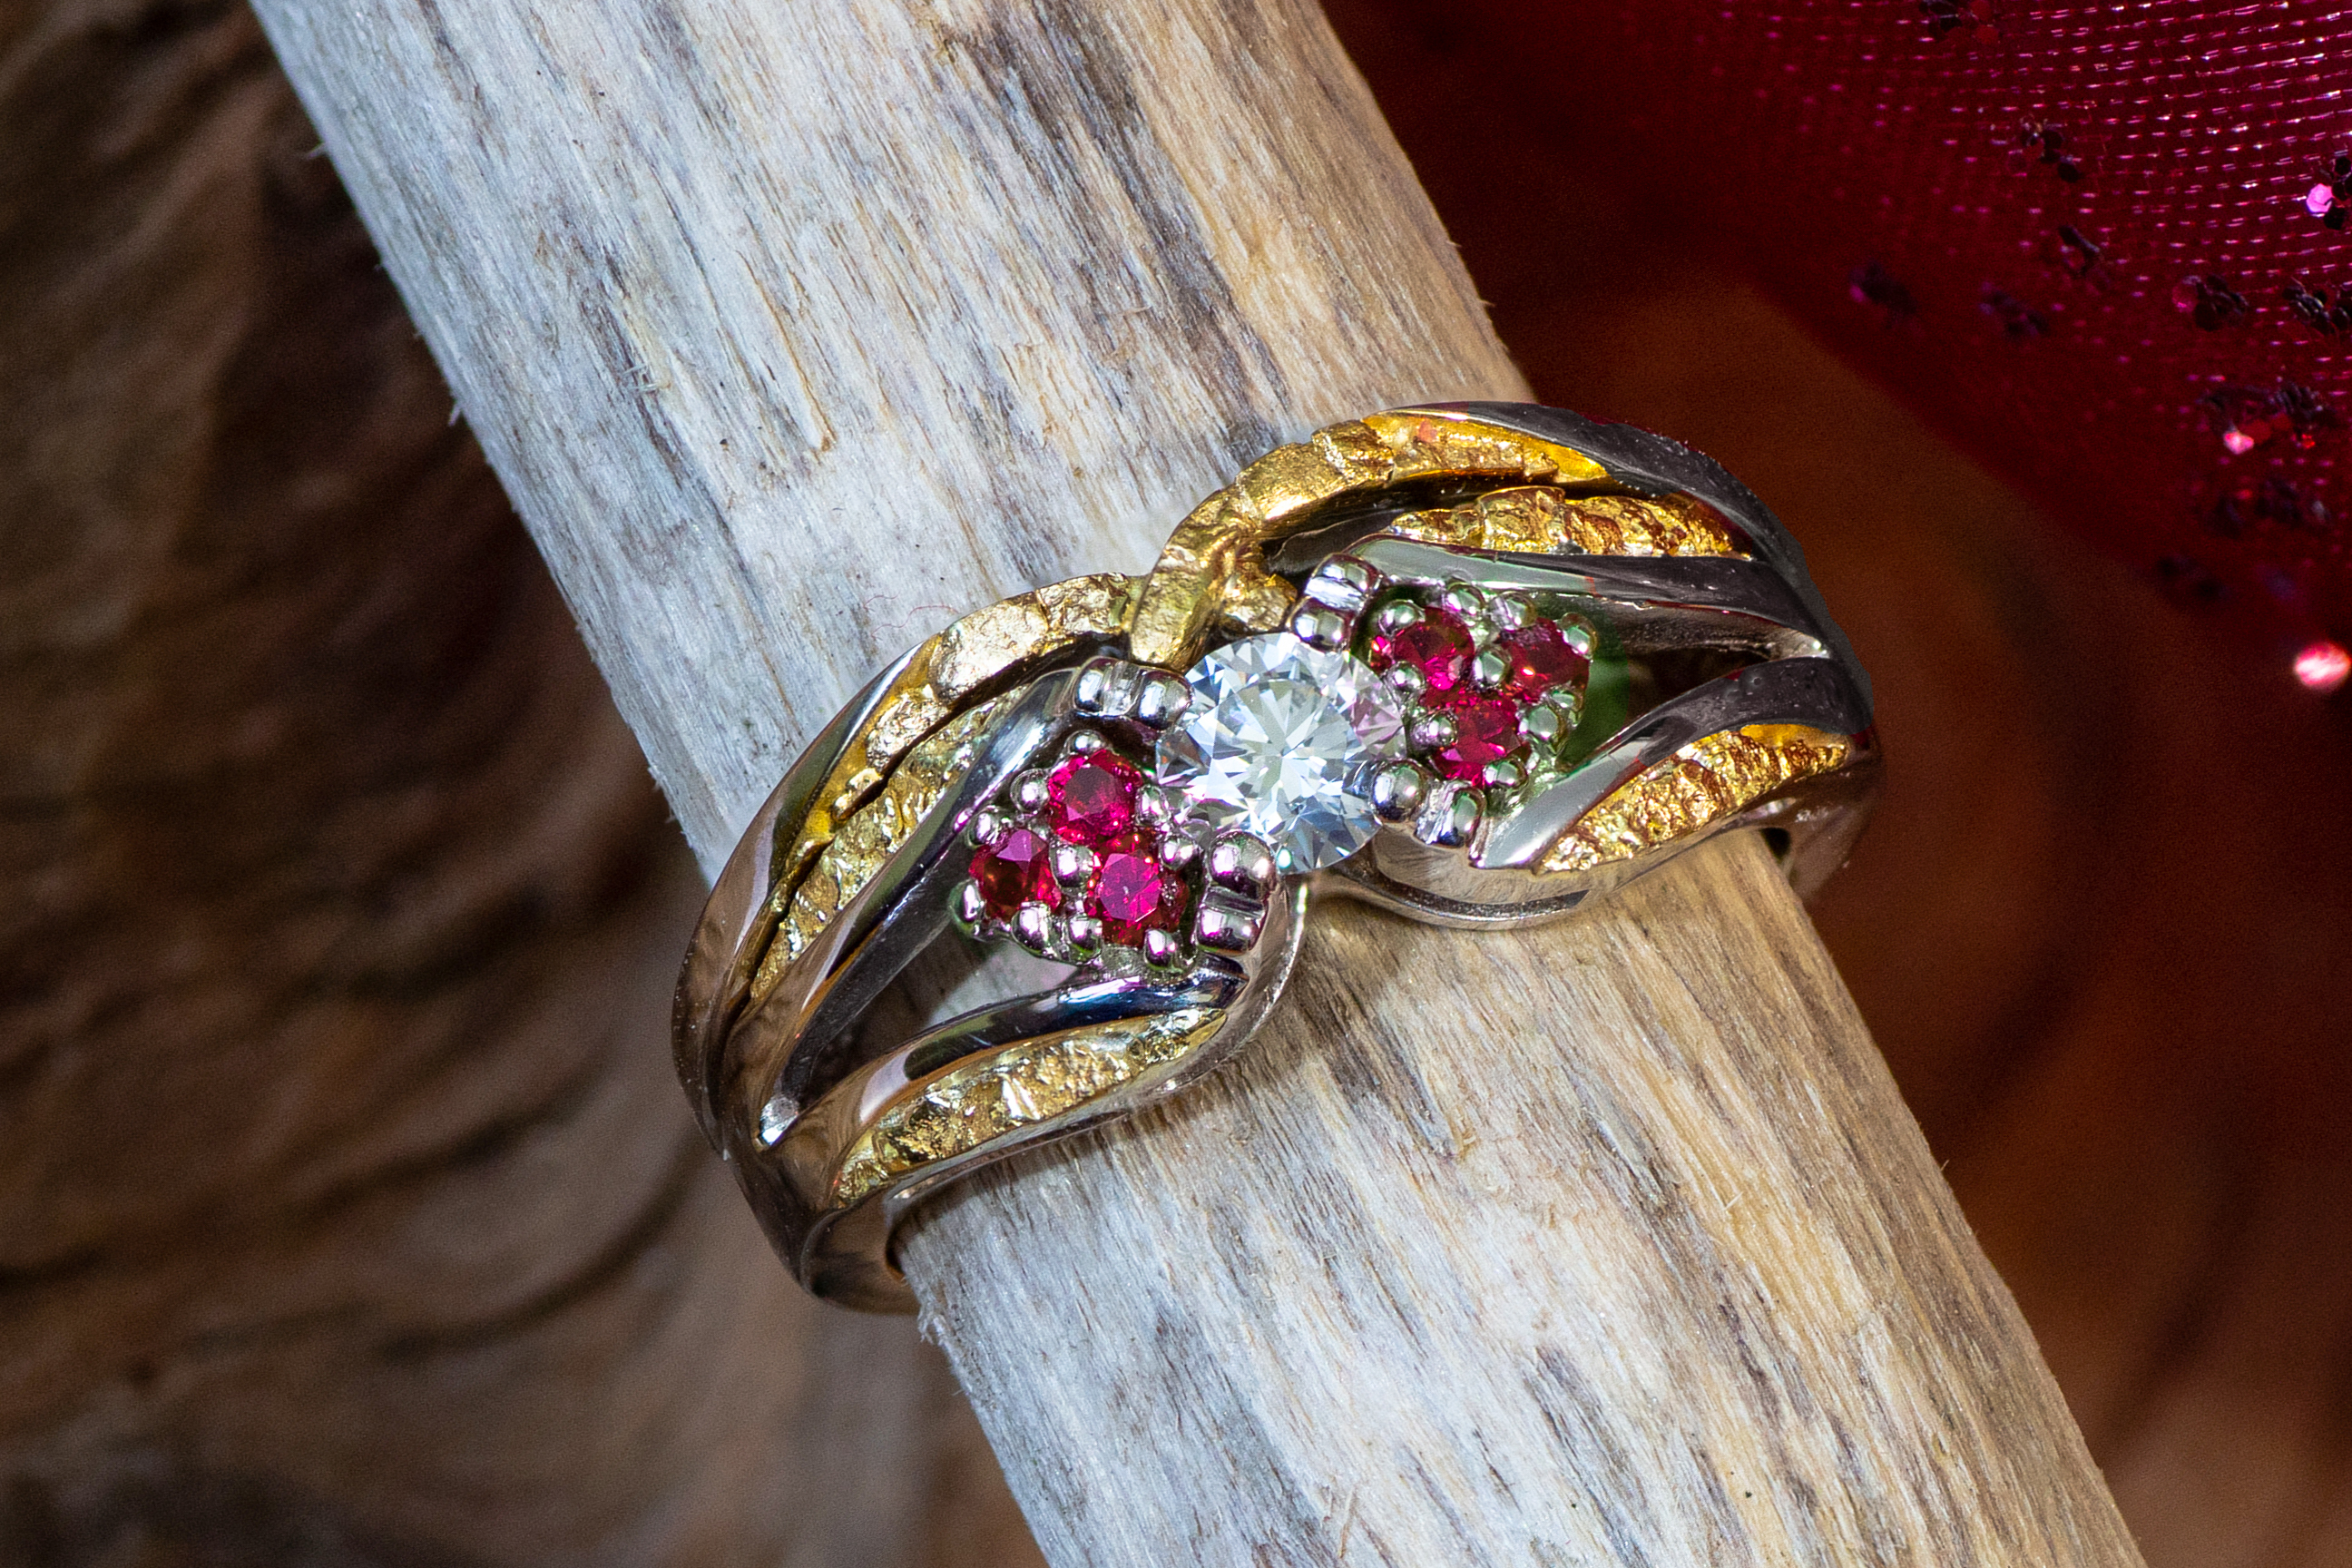 Stunning diamond center stone surrounded with gorgeous Alaskan gold nuggets and Rubies fancily arranged in 14kt white gold.